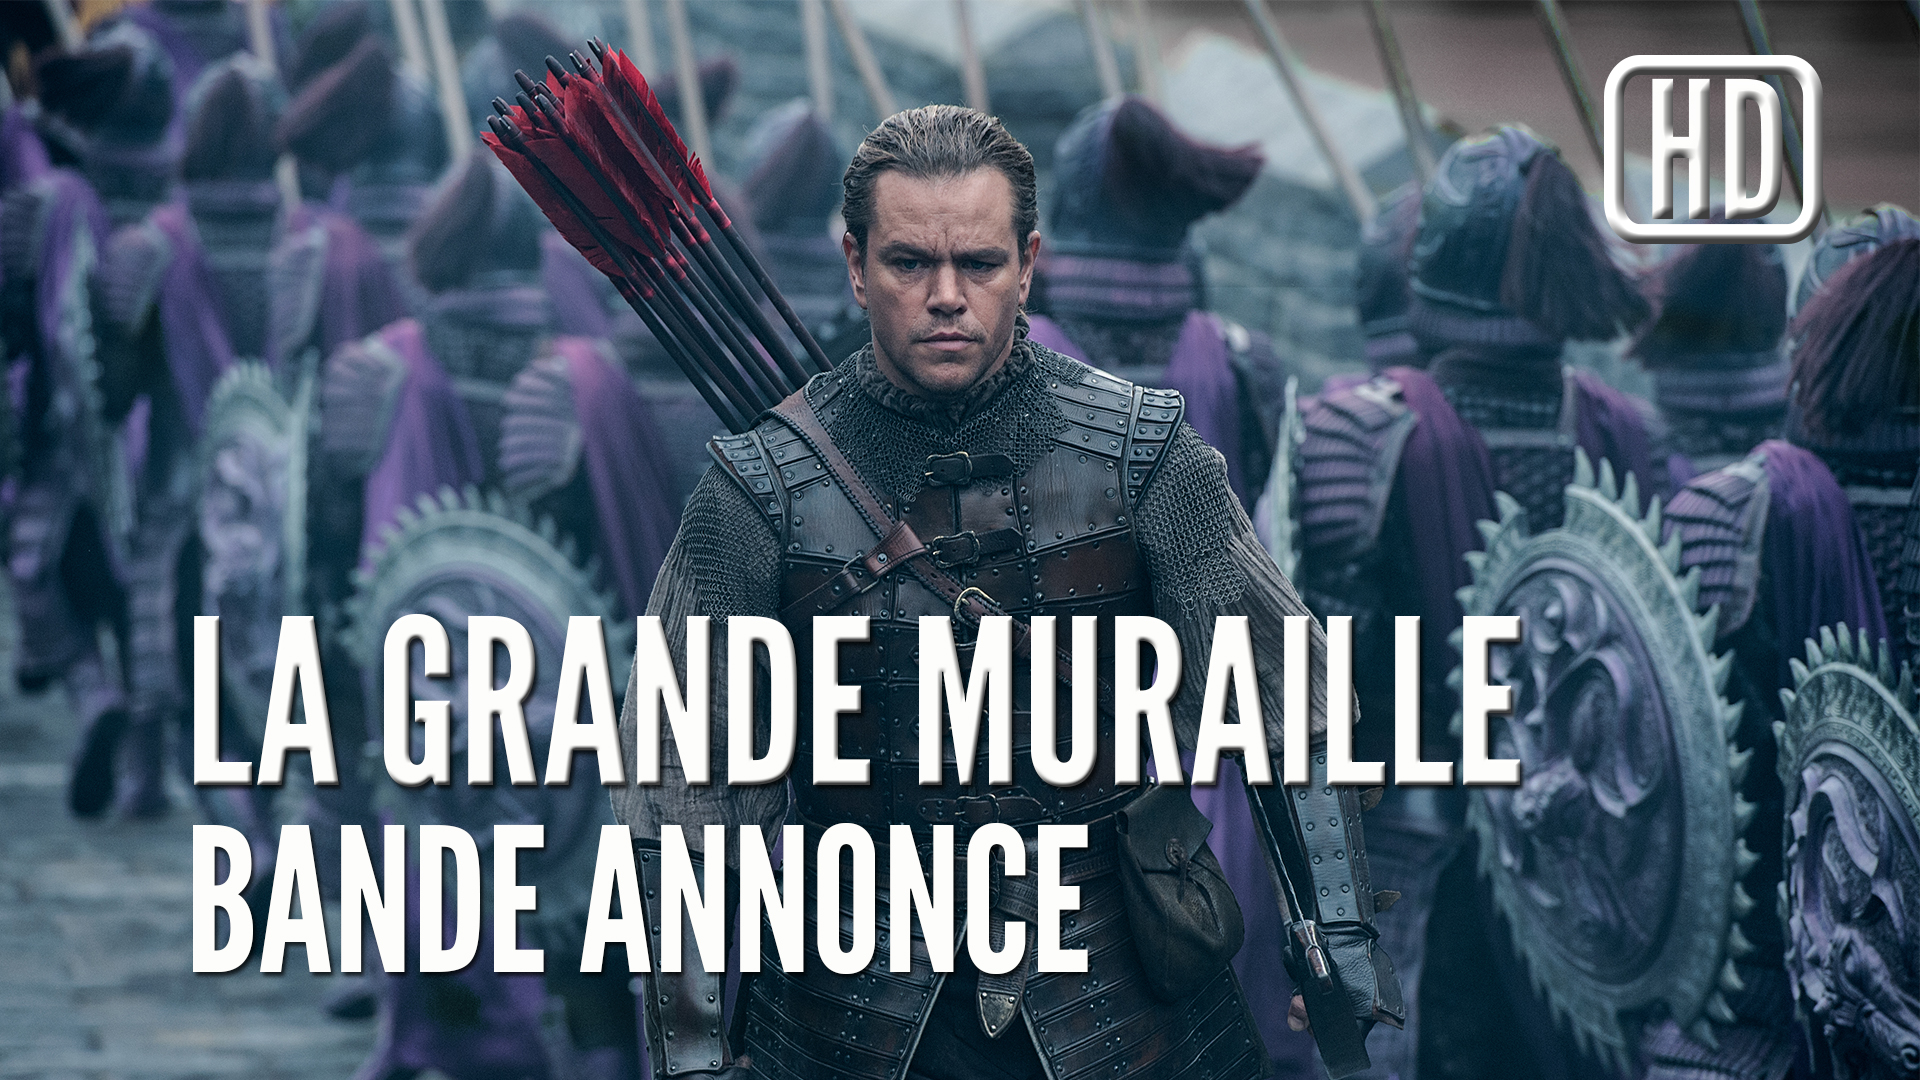 La Grande Muraille (The Great Wall), La Bande-Annonce